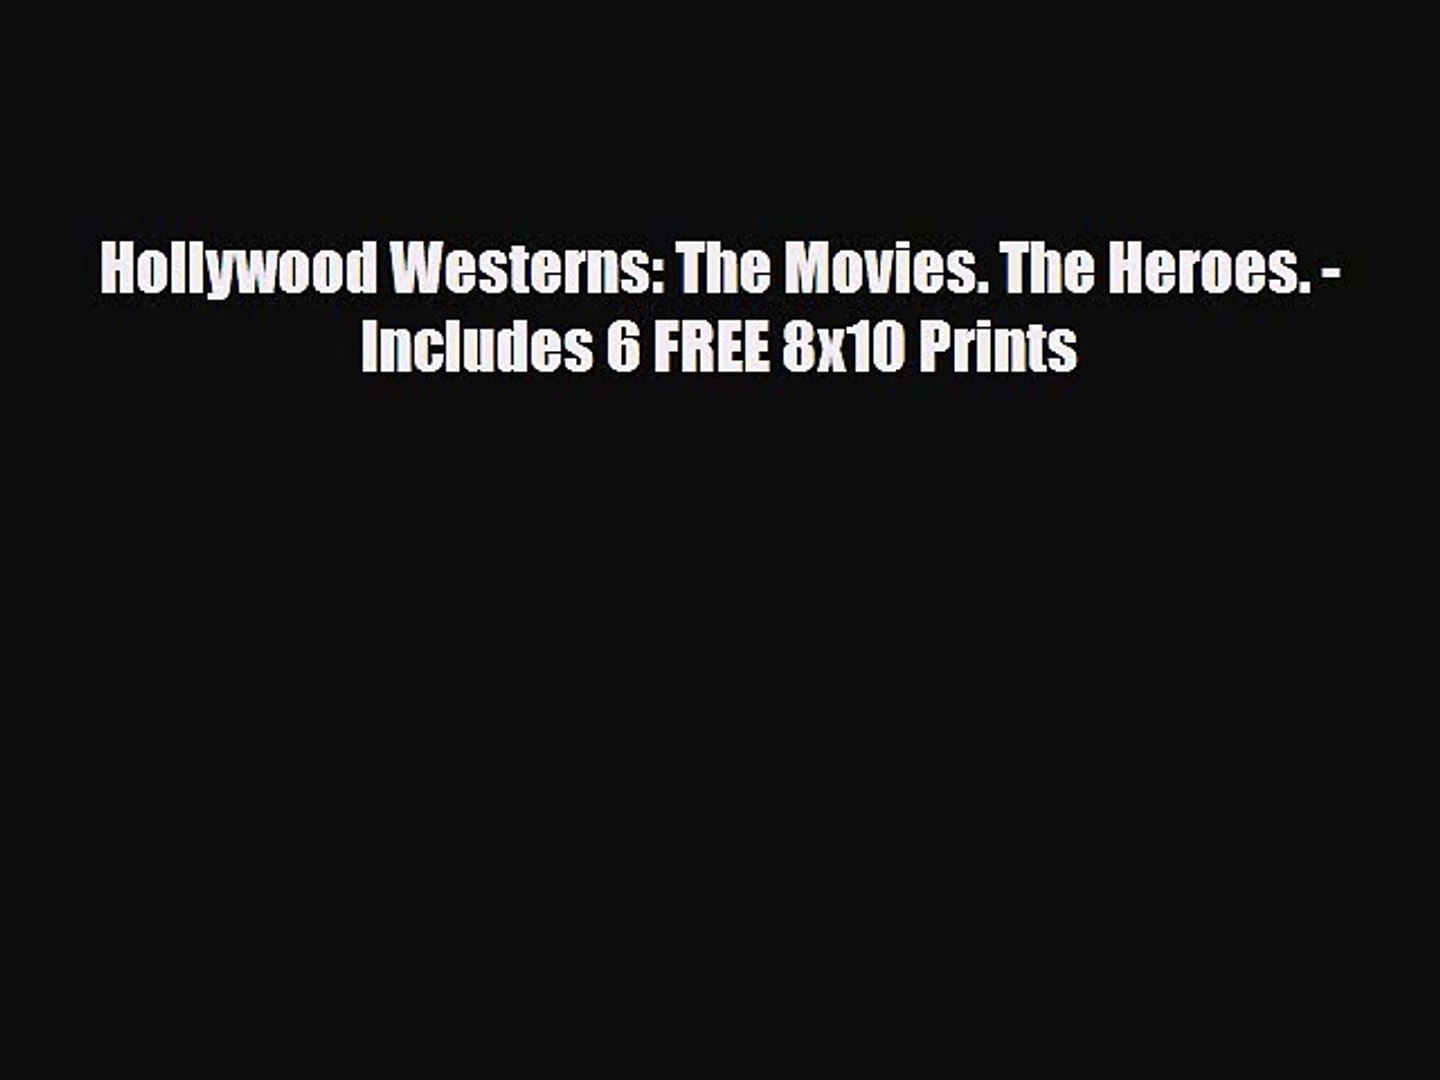 [PDF Download] Hollywood Westerns: The Movies. The Heroes. - Includes 6 FREE 8x10 Prints [Download]